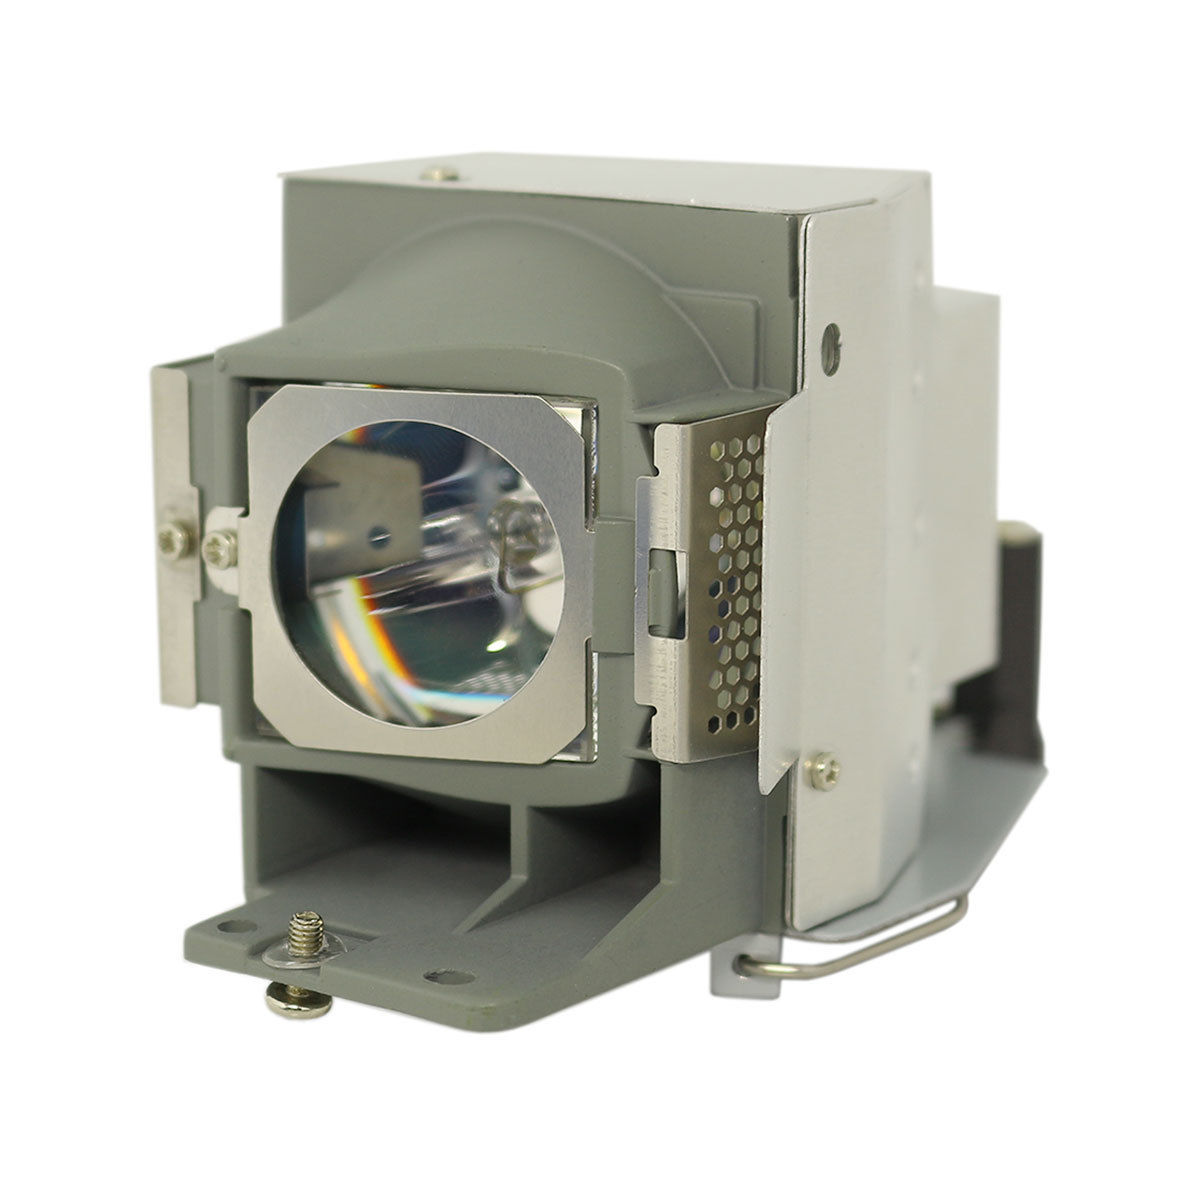 Projector Lamp Bulb RLC-071 RLC071 for VIEWSONIC PJD6253 PJD6383 PJD6383s PJD6553w PJD6683w with housing s quire бритвенный набор s quire 6253